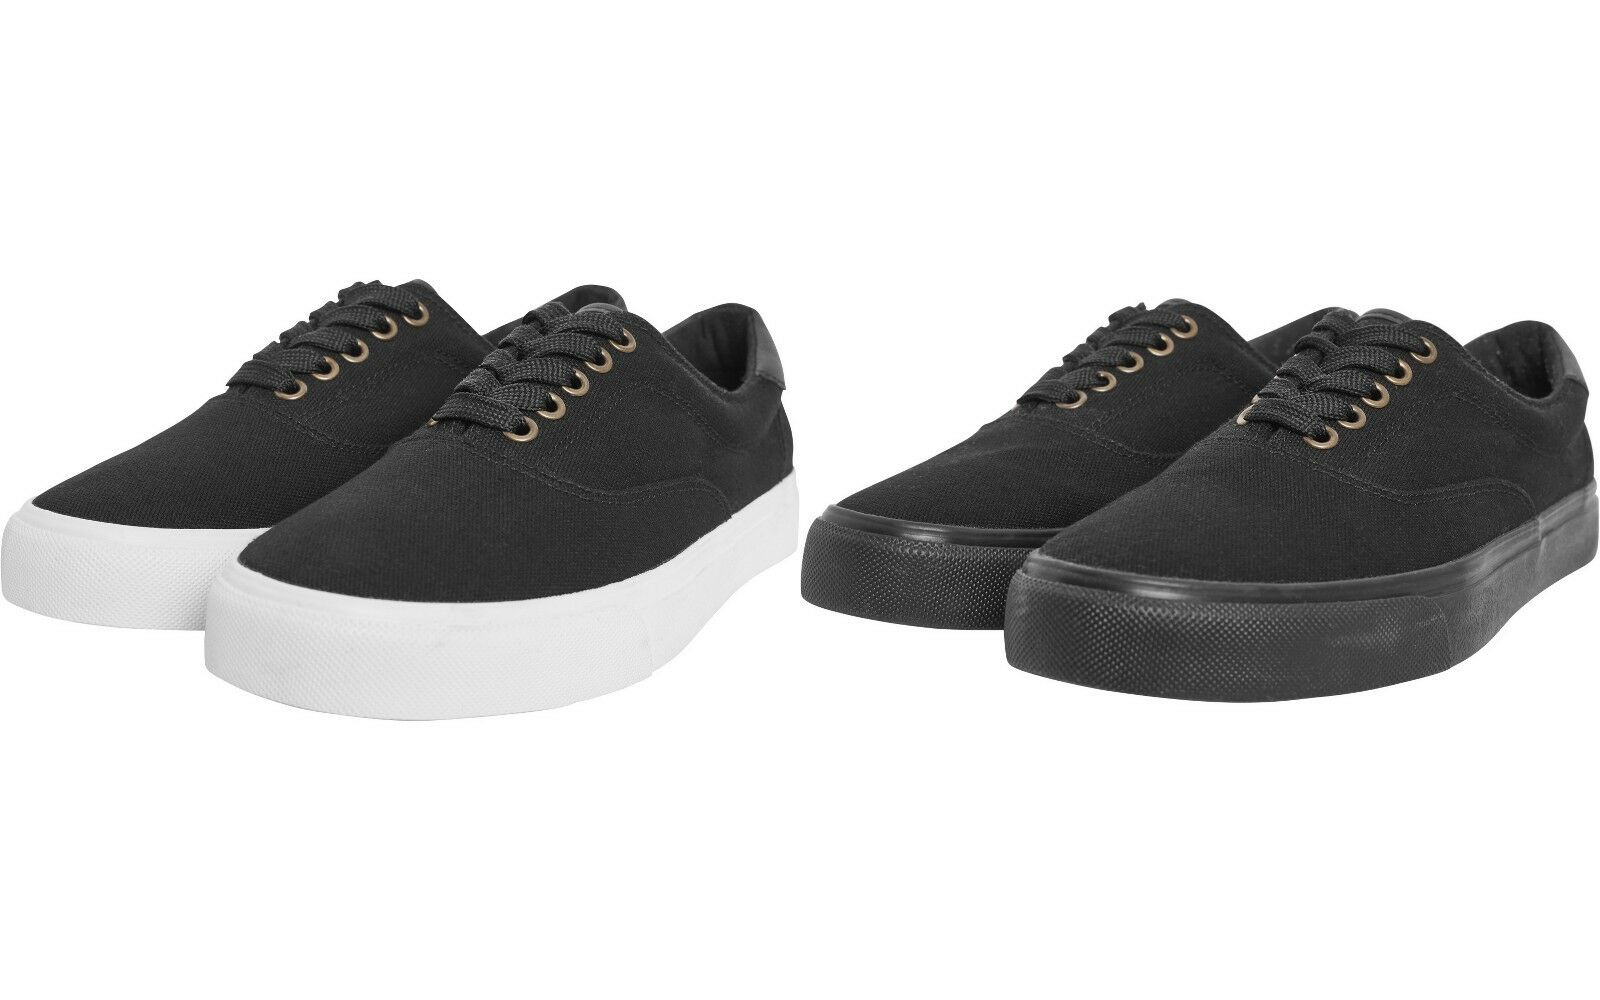 URBAN CLASSICS Men's shoes woman Low Sneaker With Laces